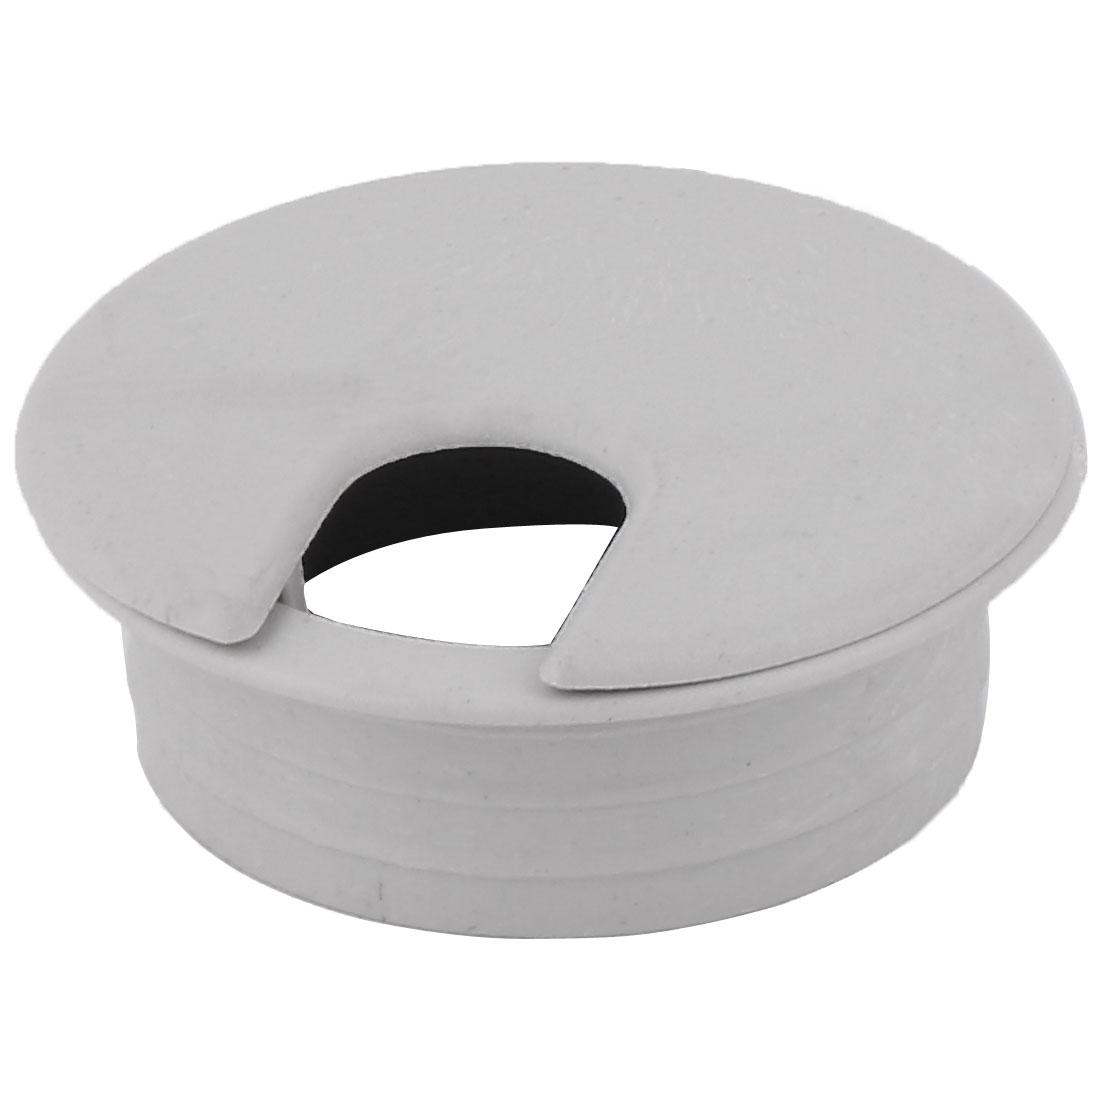 34mm Dia Round Plastic Grommet Cable Hole Covers for Computer Desk